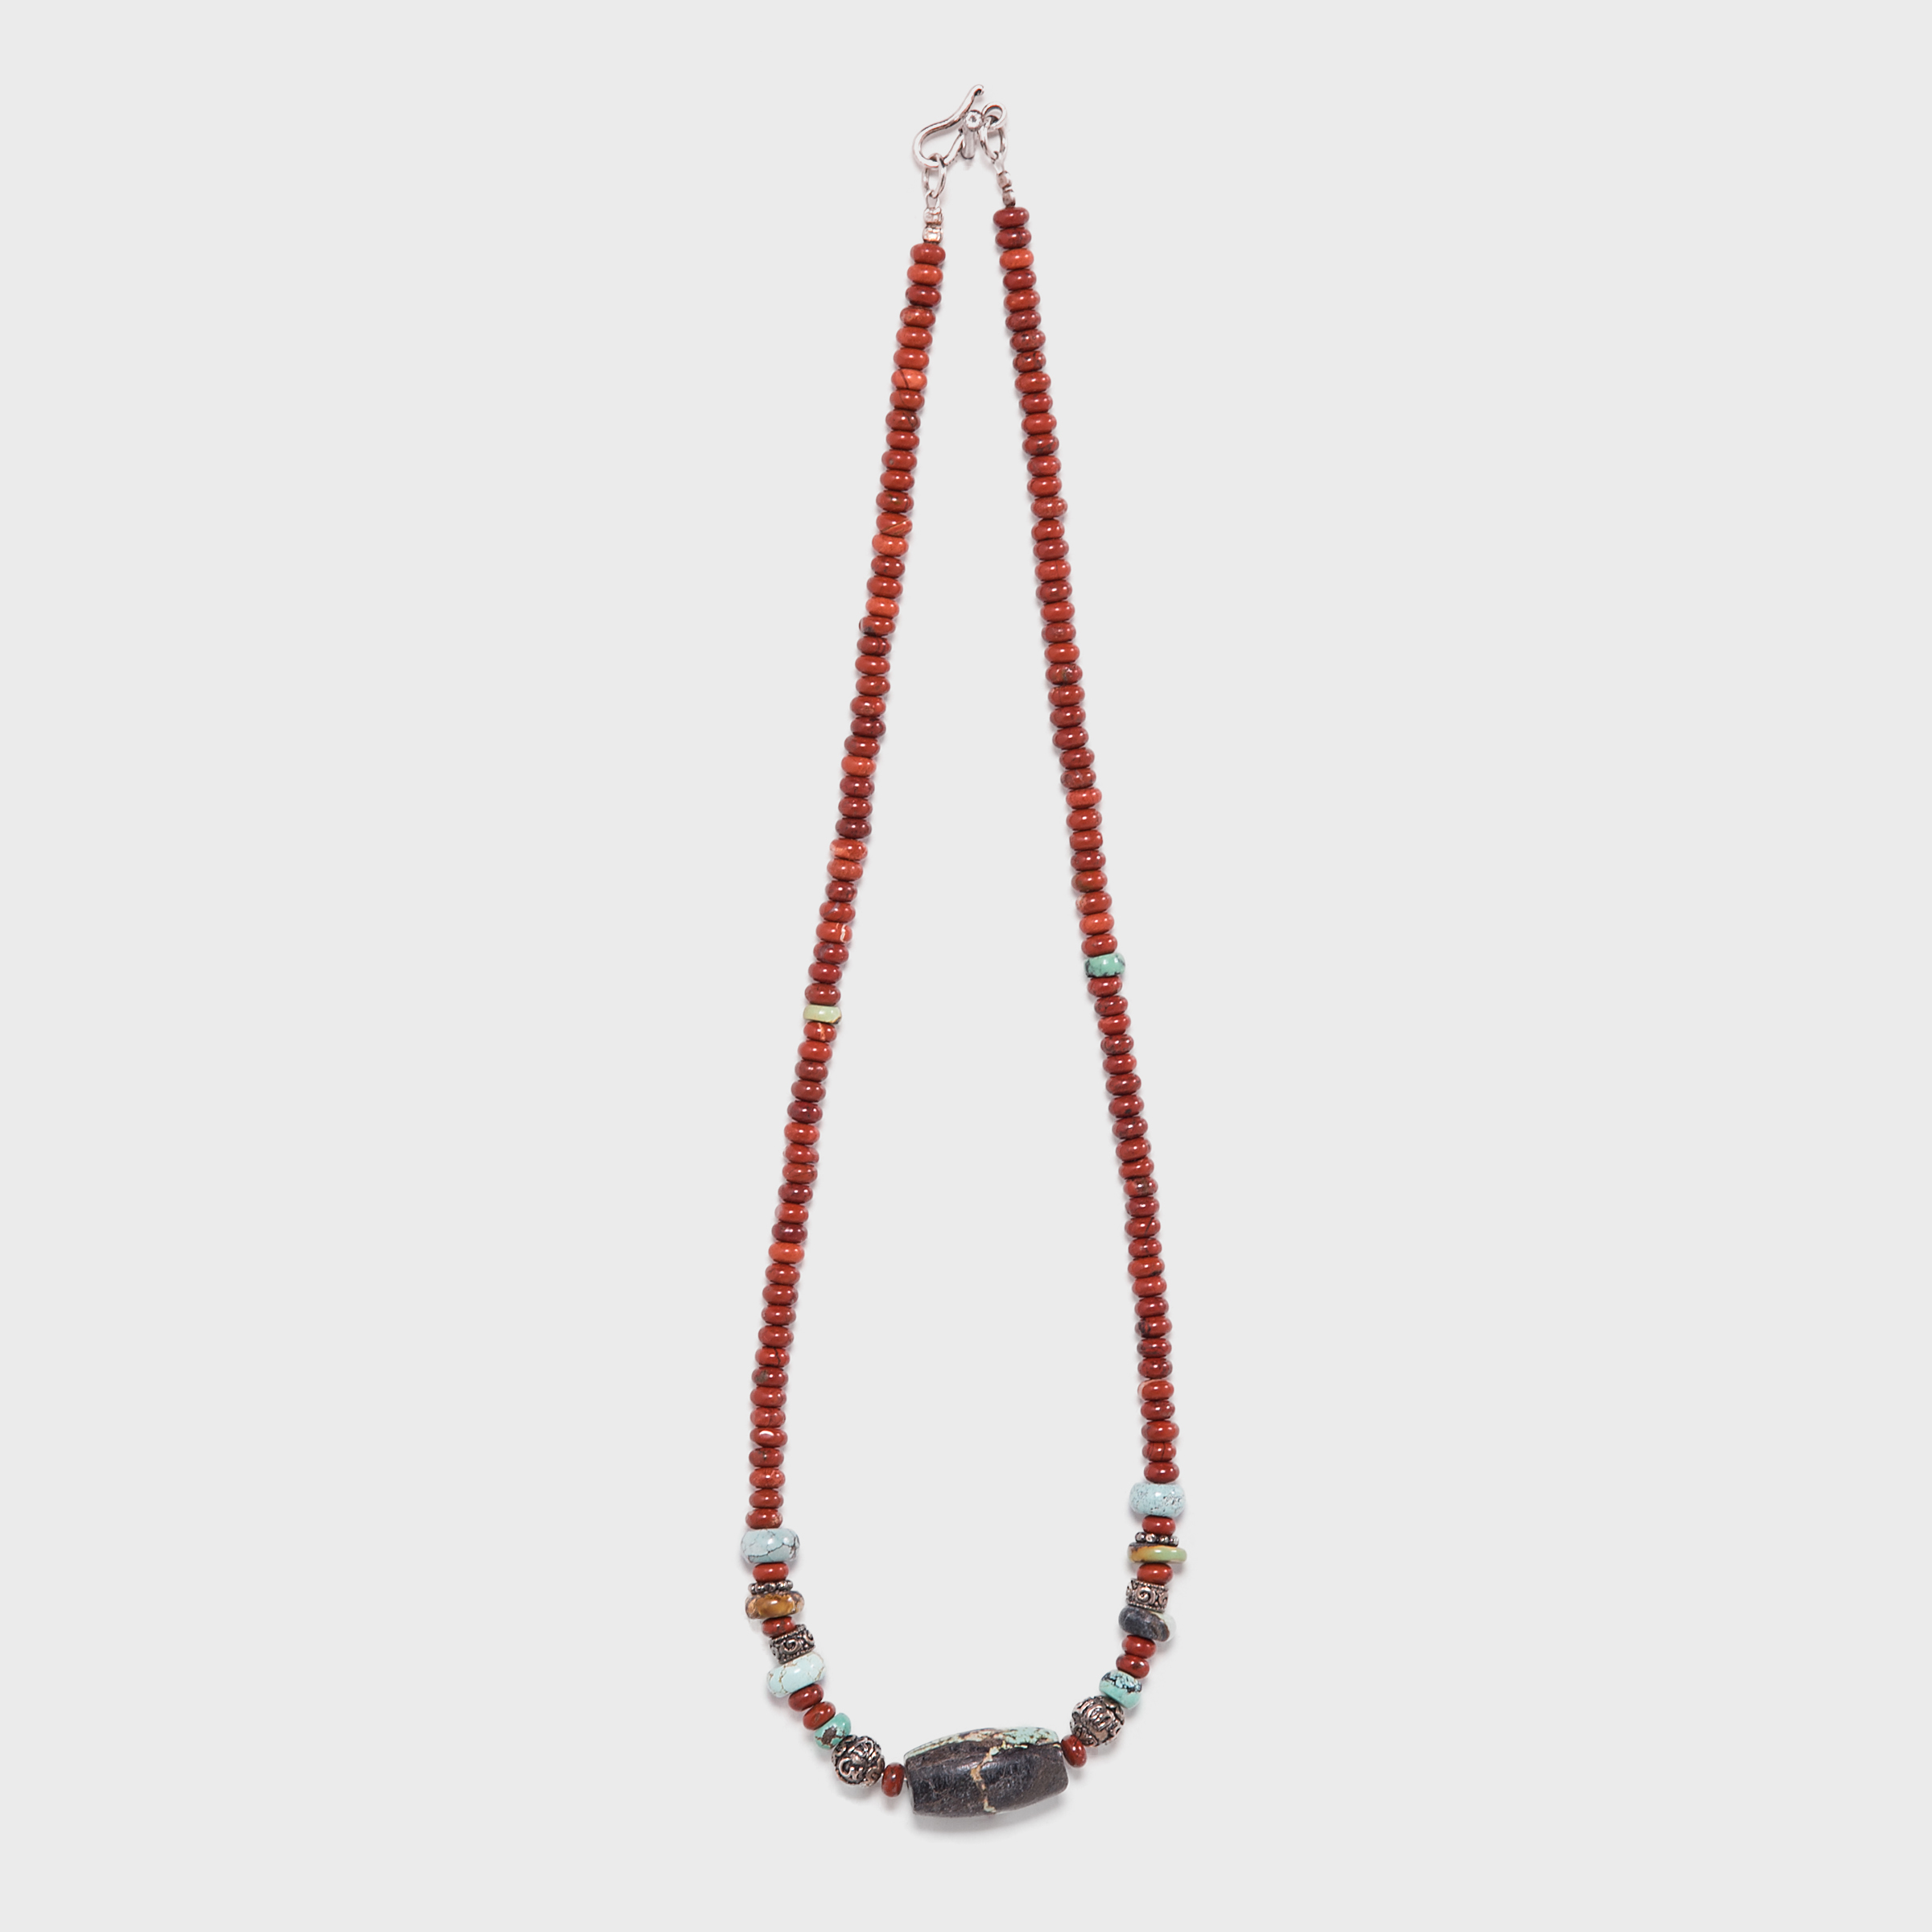 Carnelian and Turquoise Necklace with Tibetan Silver Beads